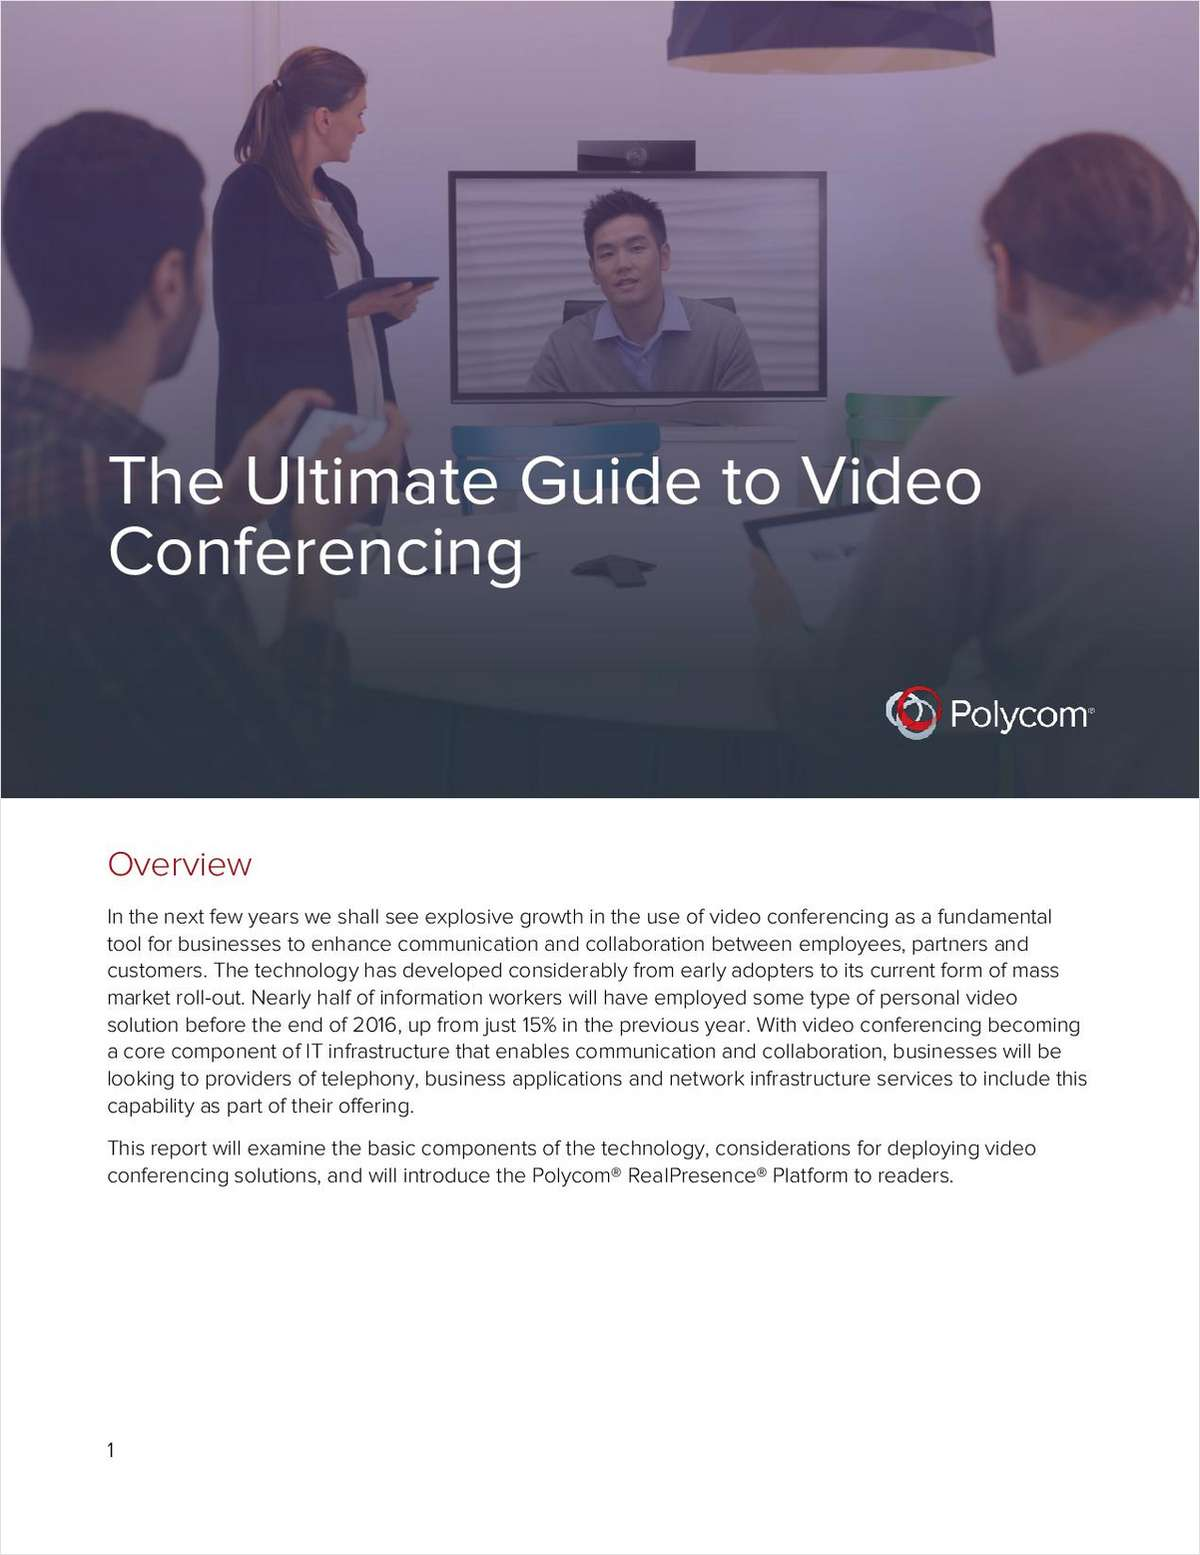 The Ultimate Guide to Video Conferencing, Free Polycom, Inc  Report